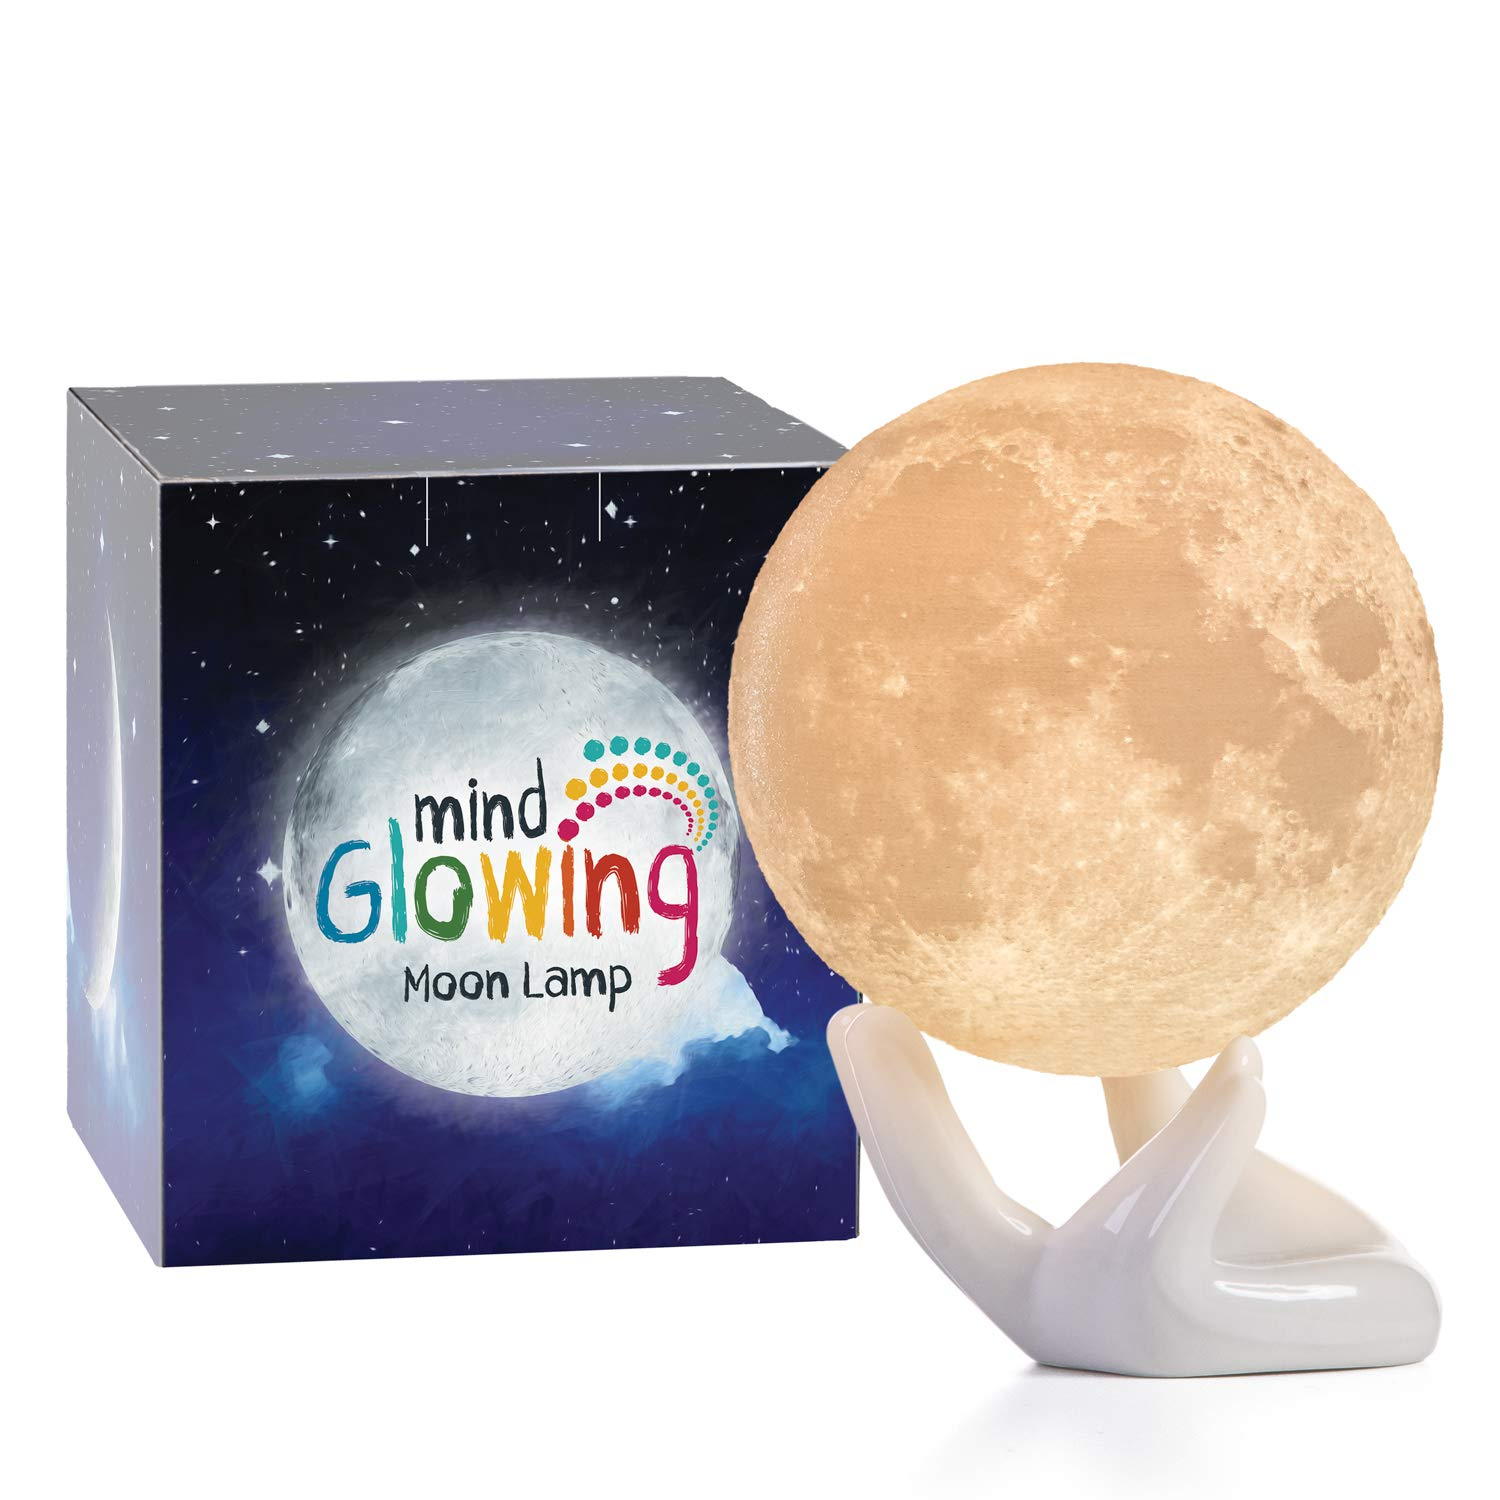 Mind-glowing 3D Moon Lamp - Warm and Lunar White Night Light (Mini, 3.5in) with Ceramic Hand Stand - Nursery Decor for Your Baby, Birthday Gift Idea for Women